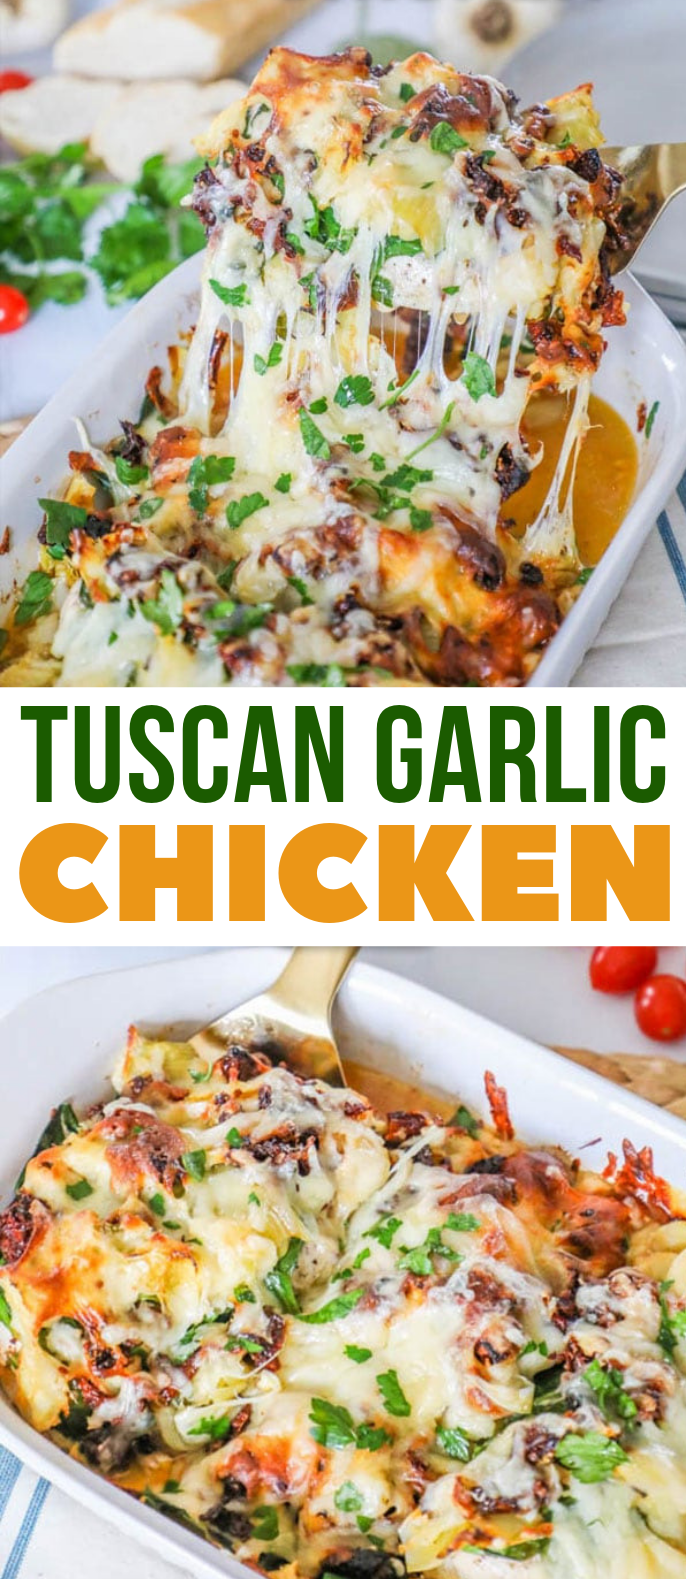 Tuscan Garlic Chicken #familyrecipe #dinner